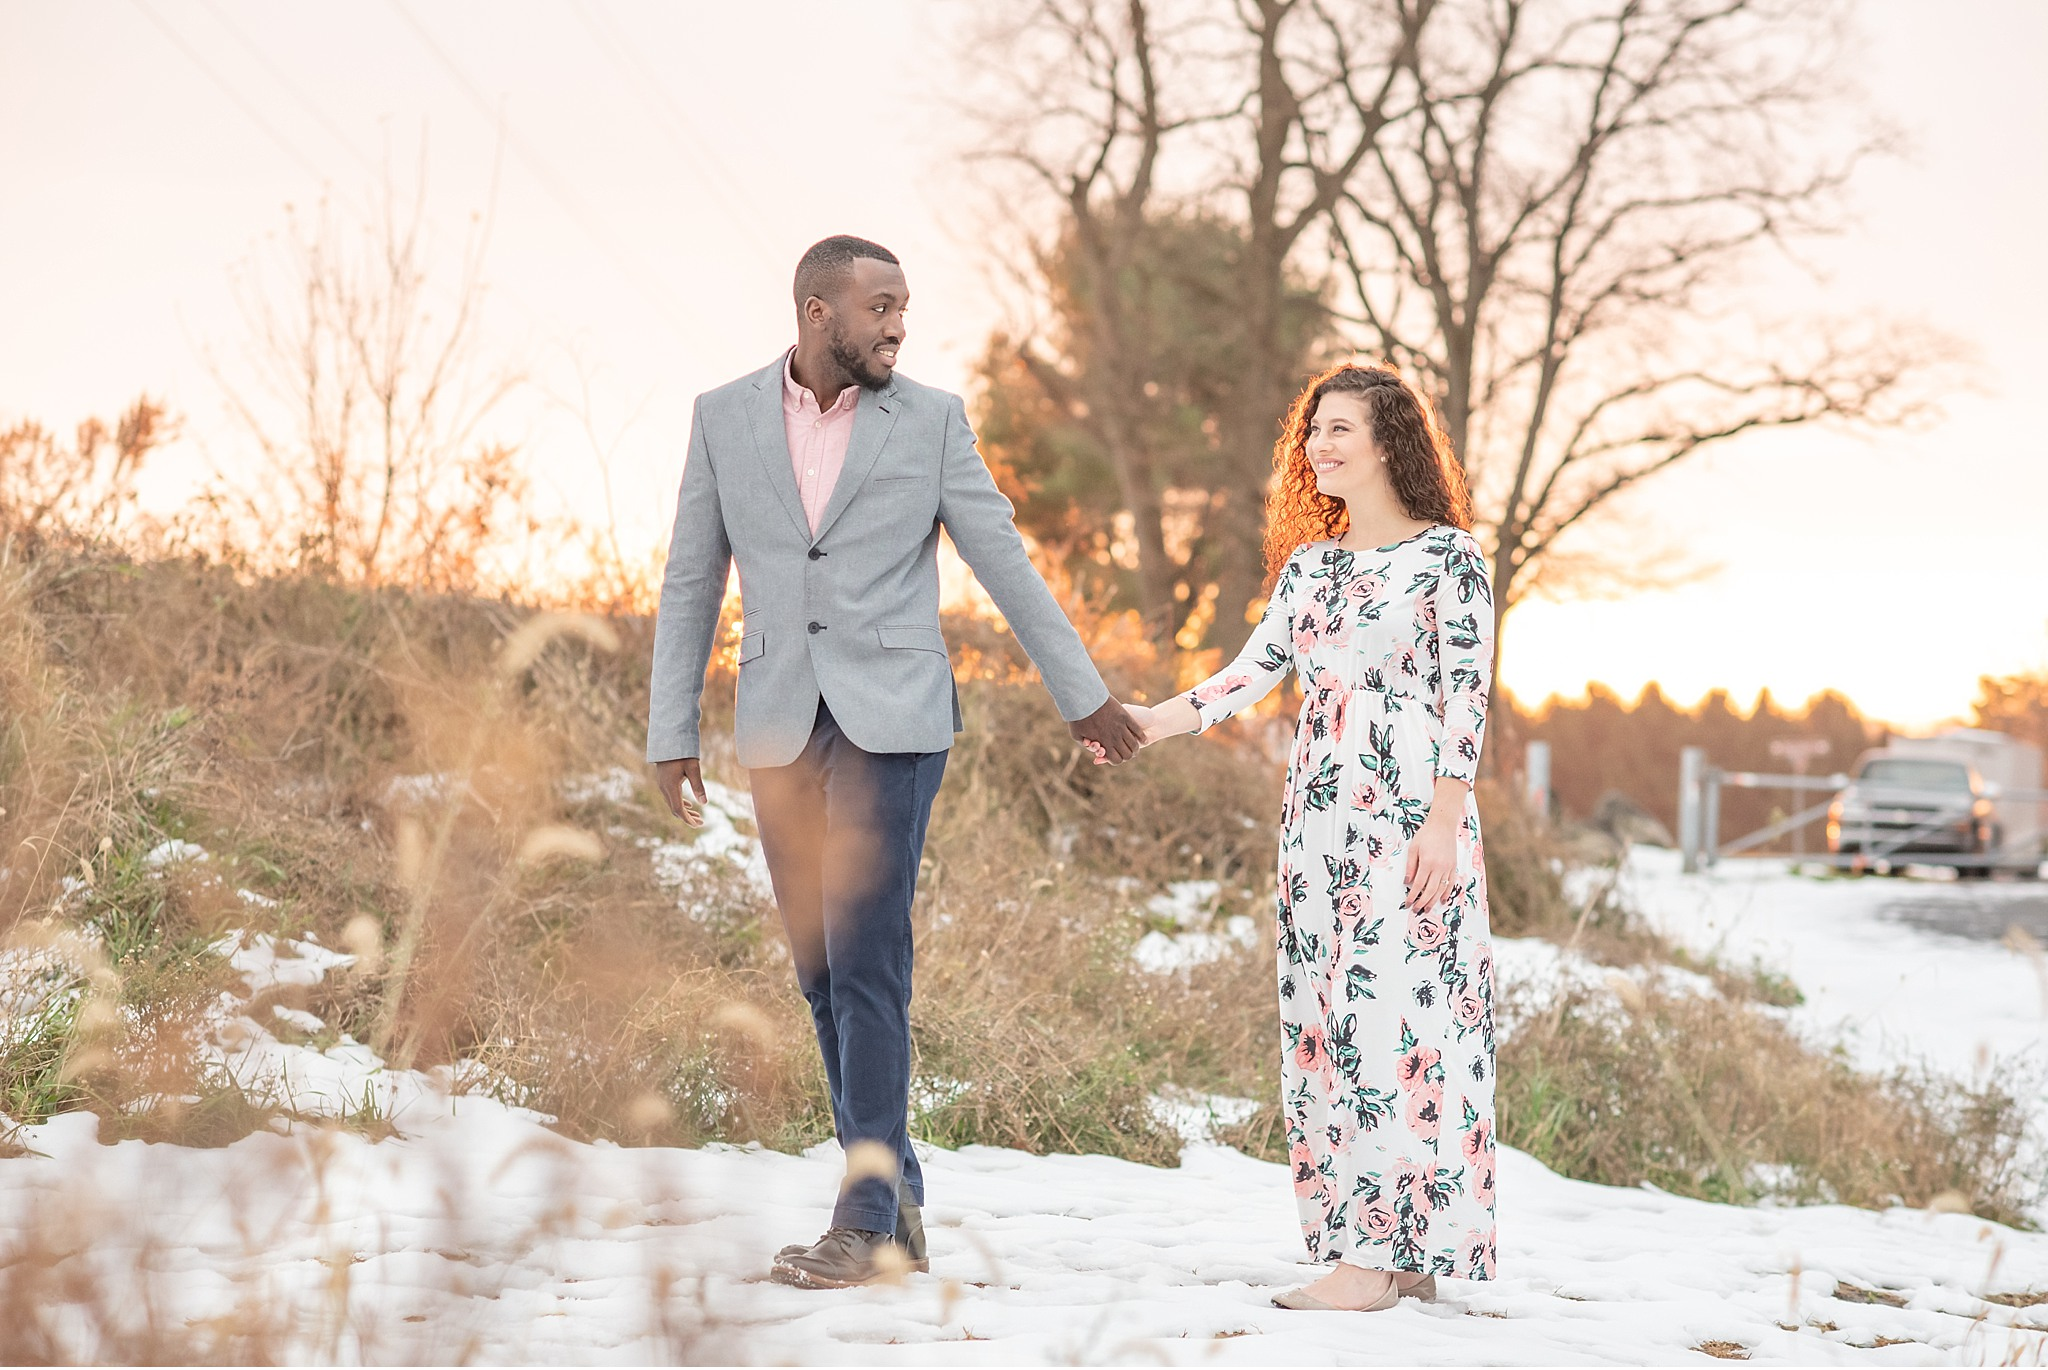 Snowy winter engagement Lancaster County Park Wedding photography photo_2850.jpg